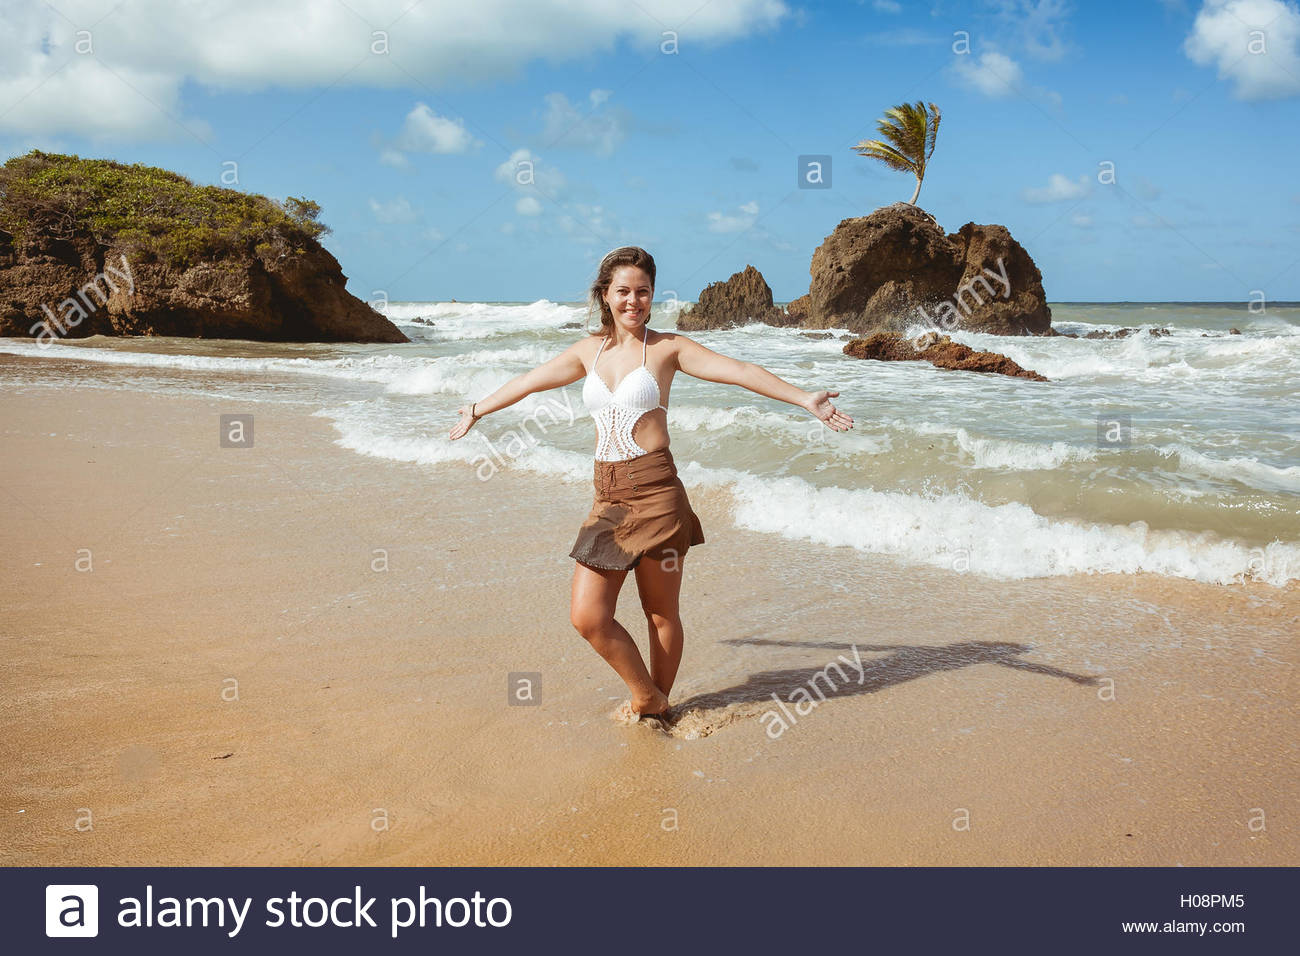 Consider, that fotos nudism recommend